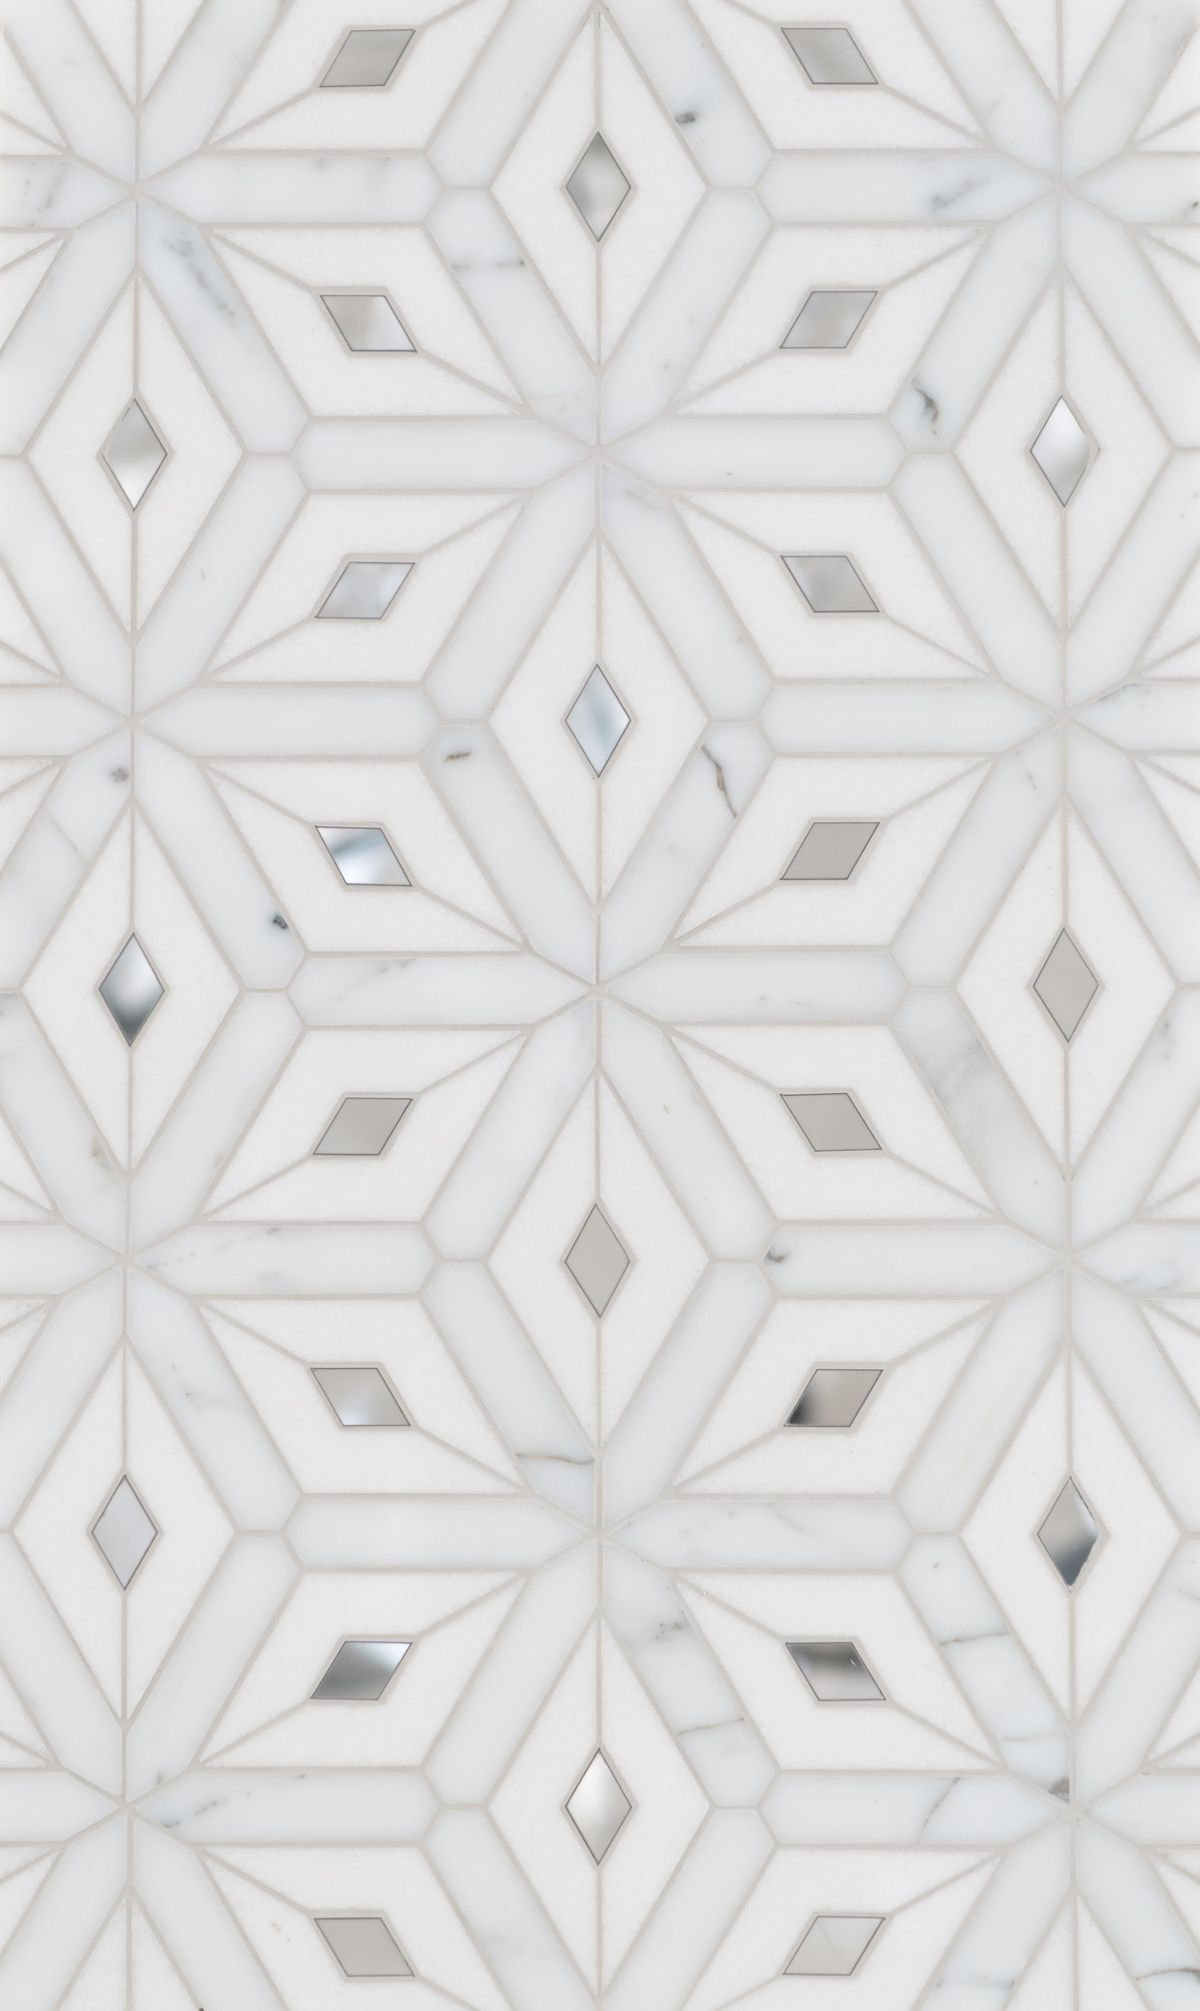 Beautiful pattern and materials montreal petite water jet montreal petite water jet mosaic by mosaque surface grey floor tiles doublecrazyfo Gallery